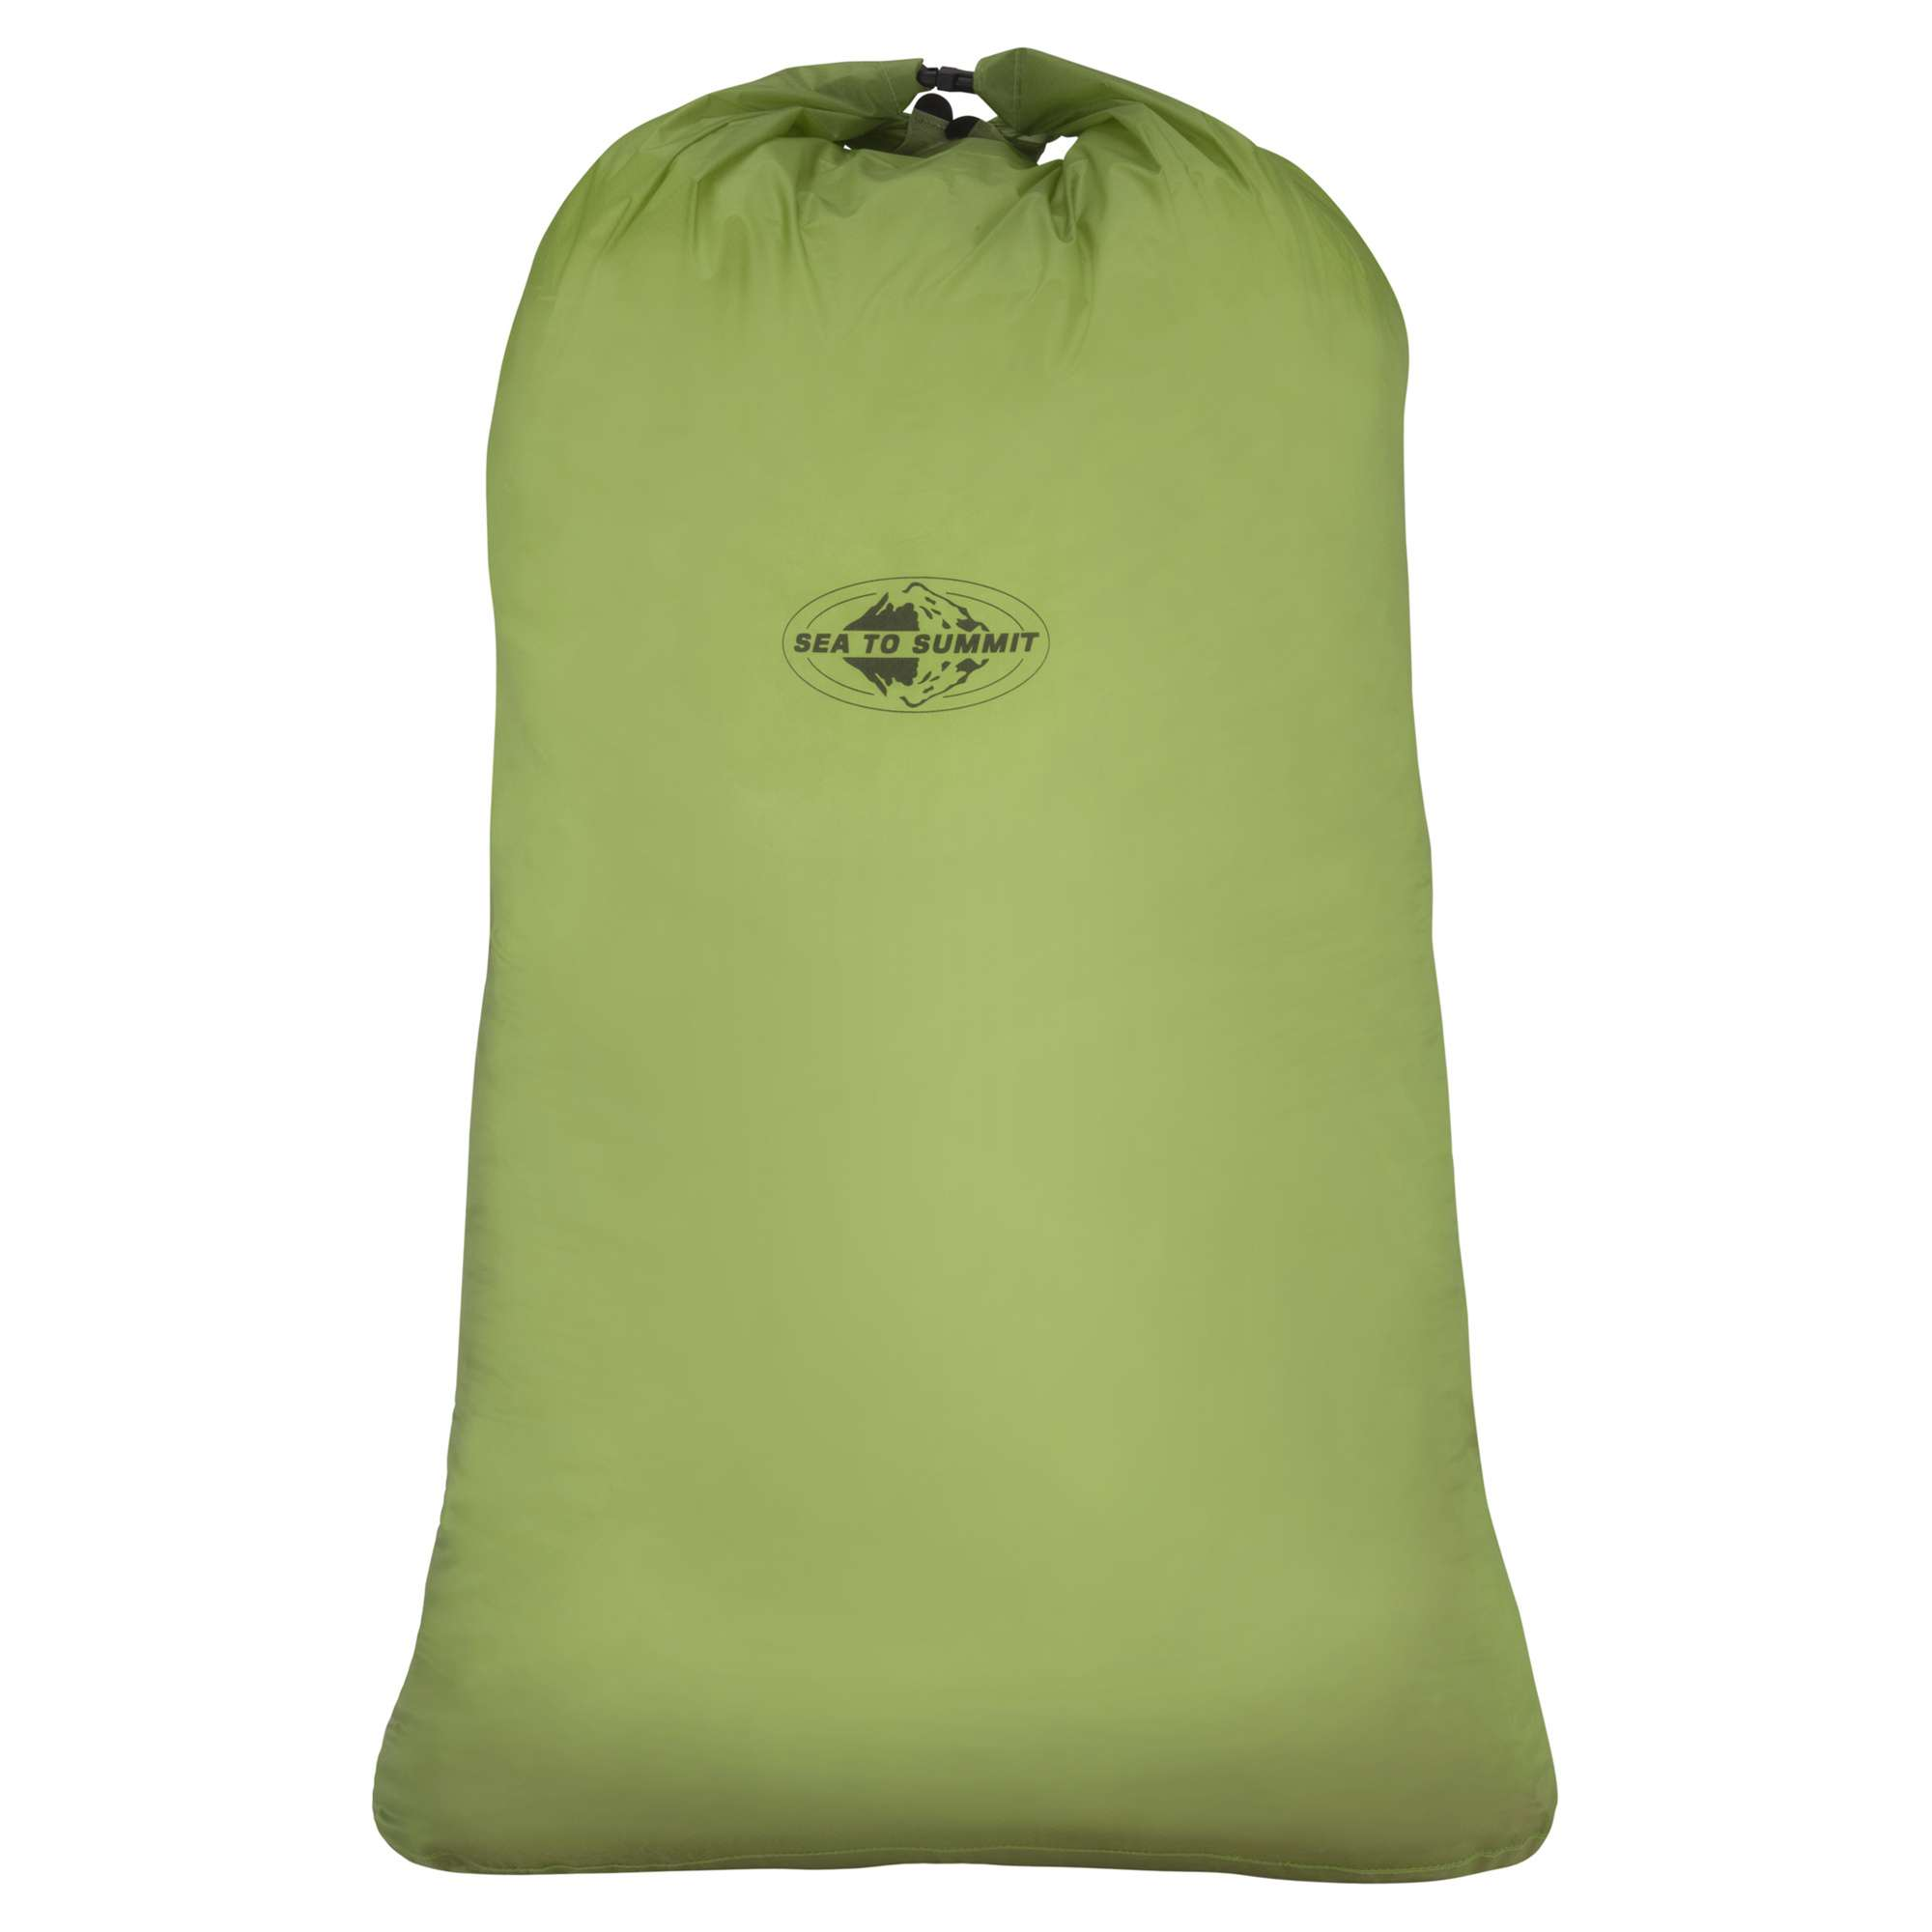 SEA TO SUMMIT Pack Liner - M